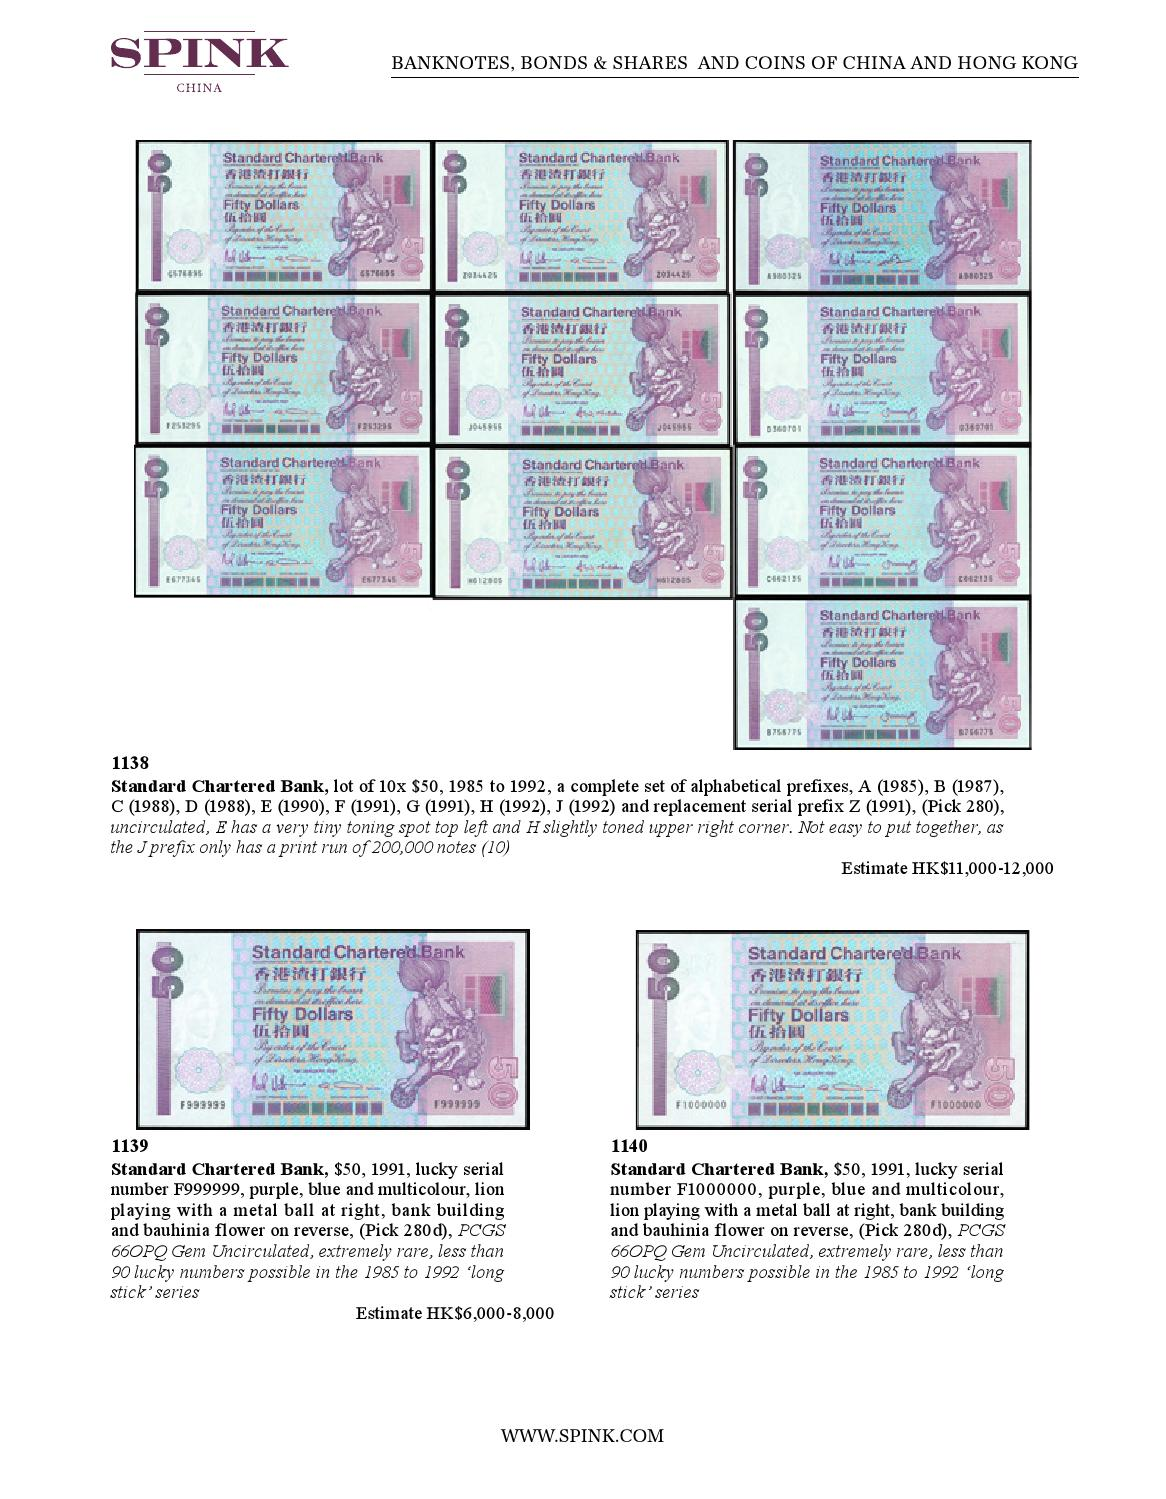 16011 - BANKNOTES, BONDS AND SHARE CERTIFICATES AND COINS OF CHINA AND HONG  KONG